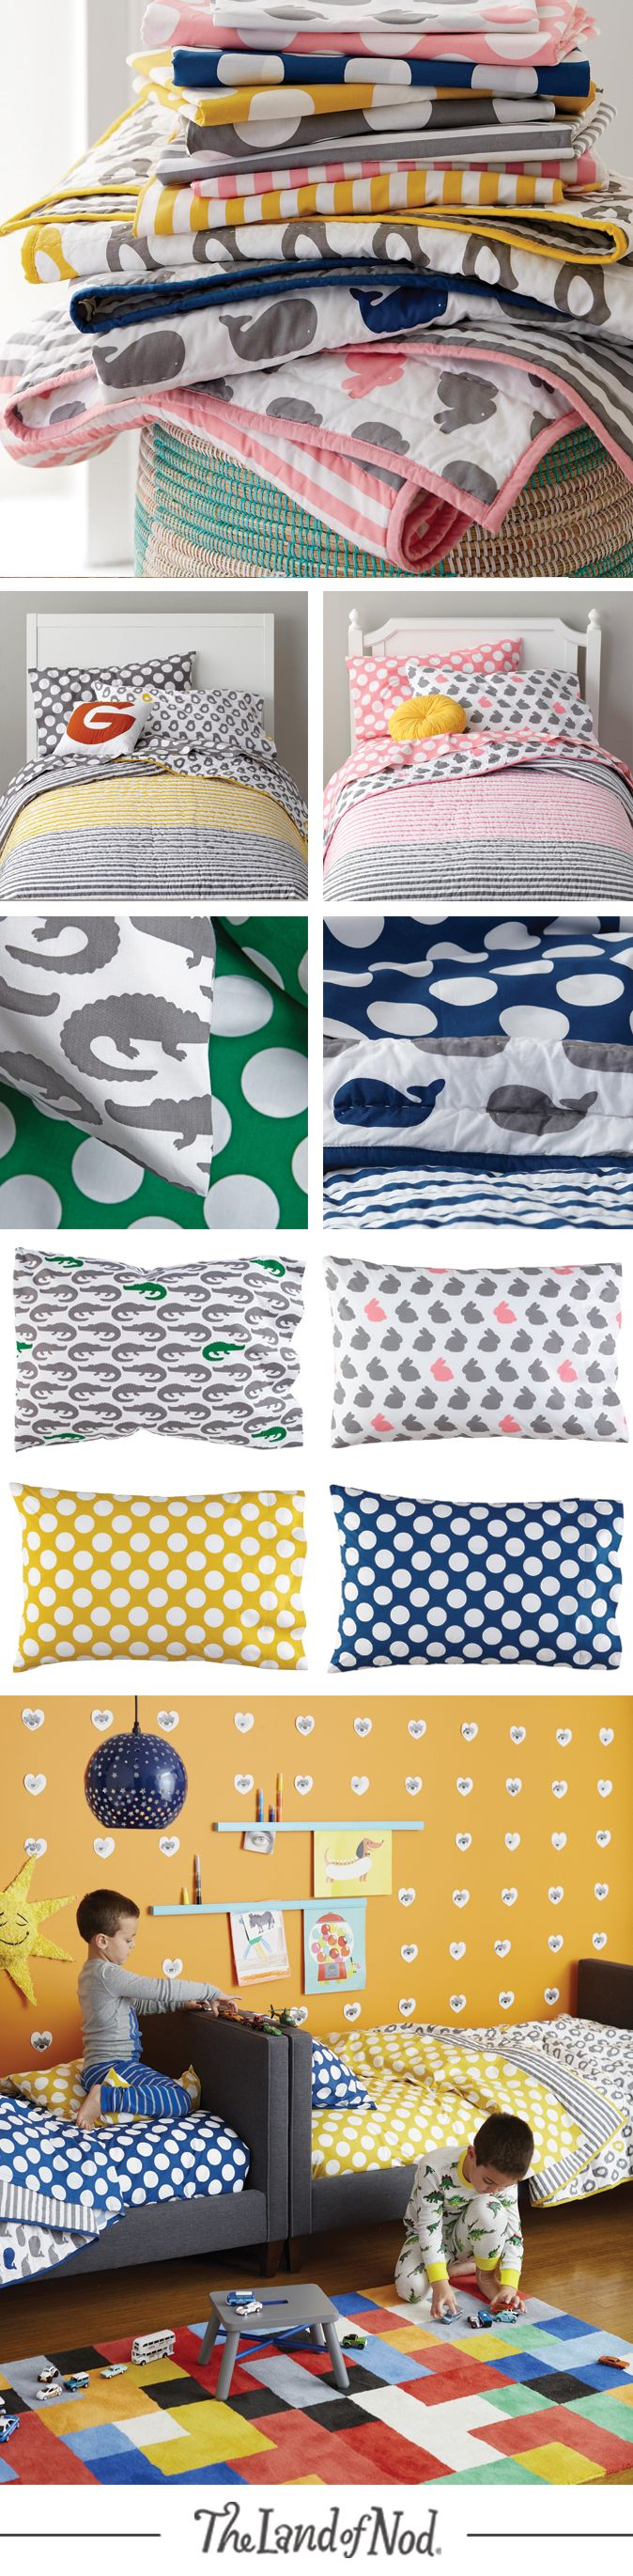 Our modern New School bedding will fit snuggly in your kids bedroom. The collection is made from super soft 100% cotton and features animal prints and polka dots sure to brighten your kids or toddlers bed. Mix and match the styles for a one-of-a-kind look.